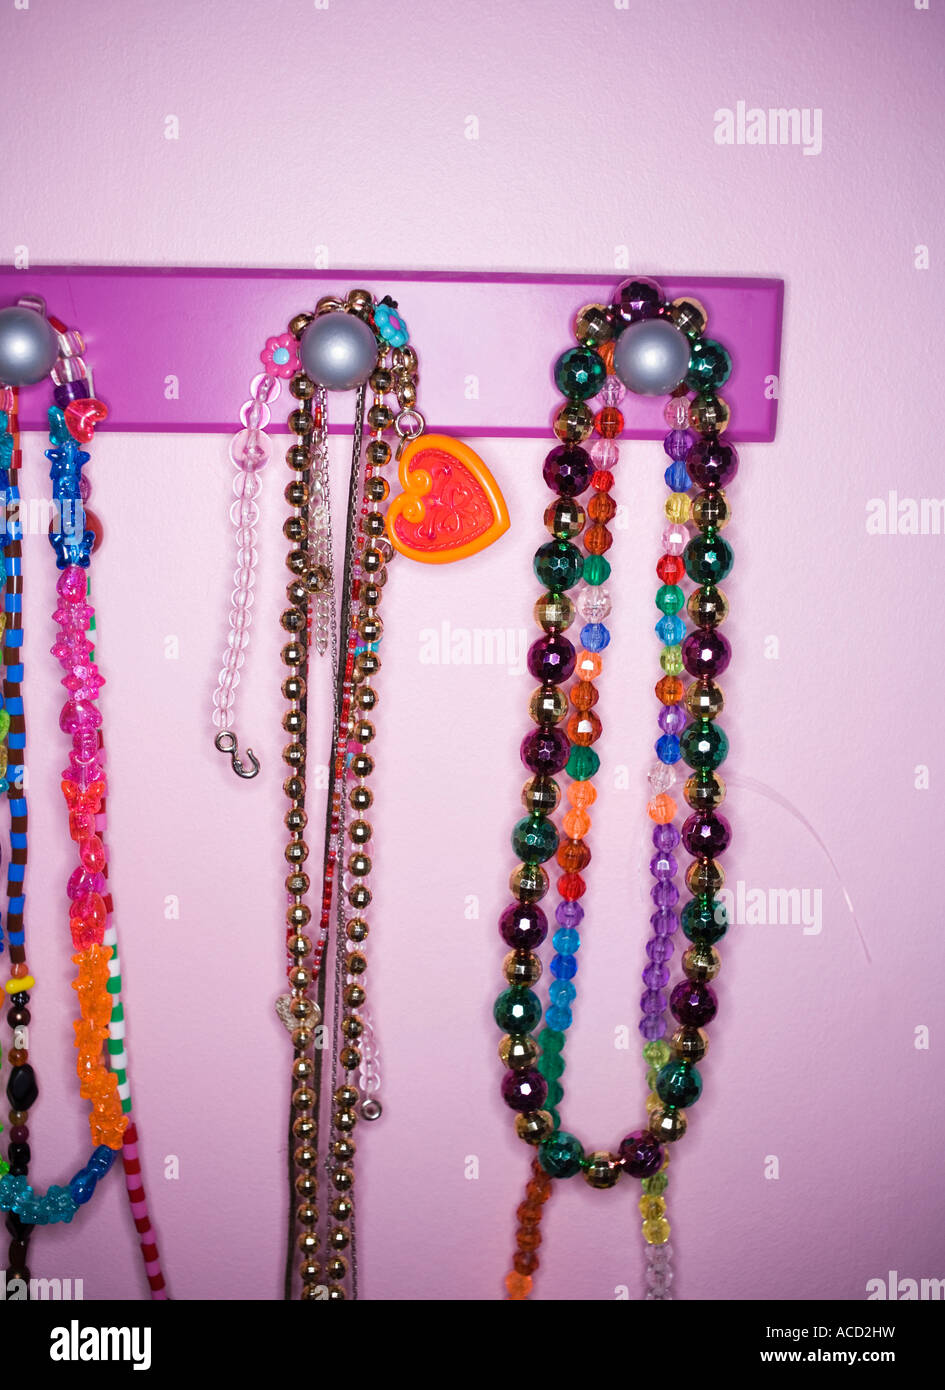 Necklaces on a hook in a childroom. - Stock Image